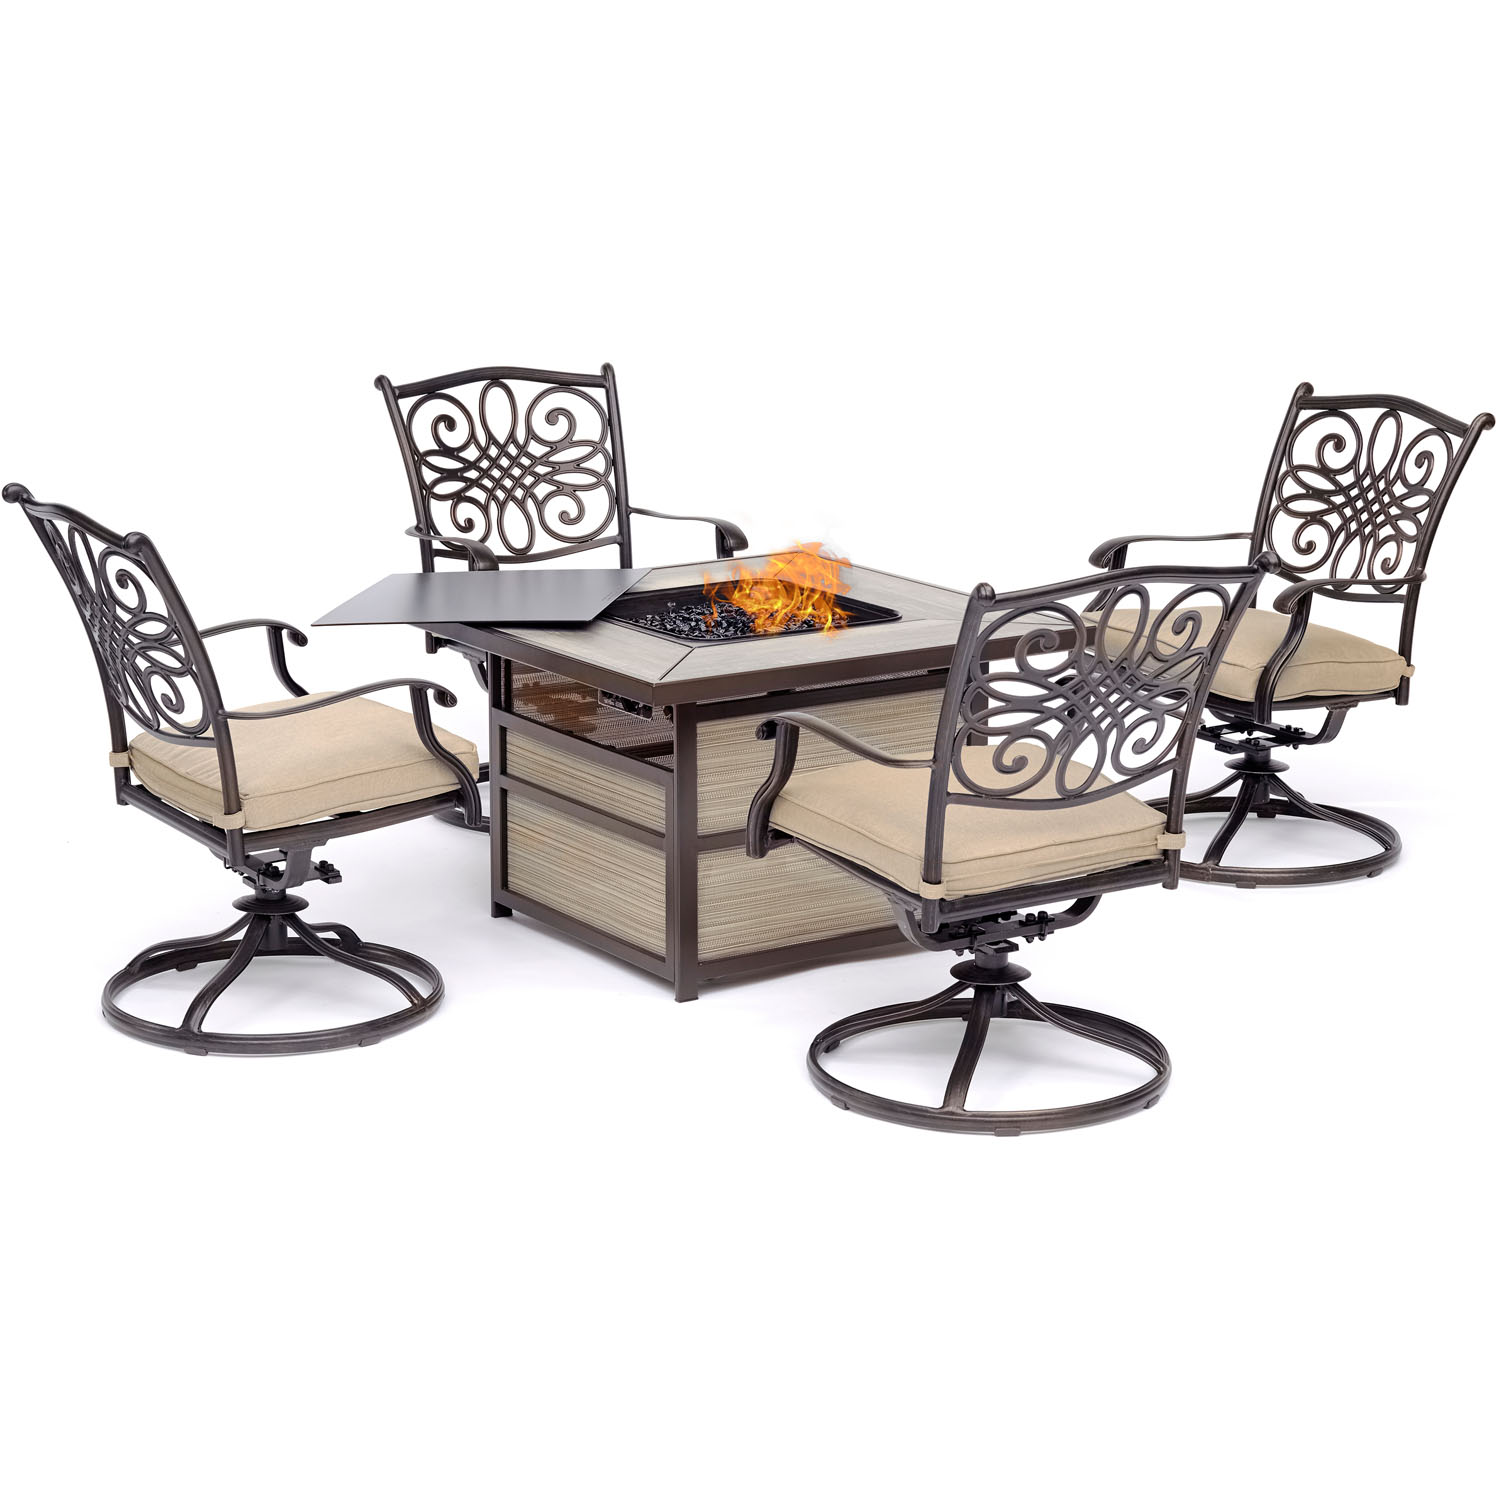 Hanover Traditions 5-Piece Firepit Chat Set with 4 Swivel Rockers in Tan with a 40,000 BTU Firepit Table by Hanover